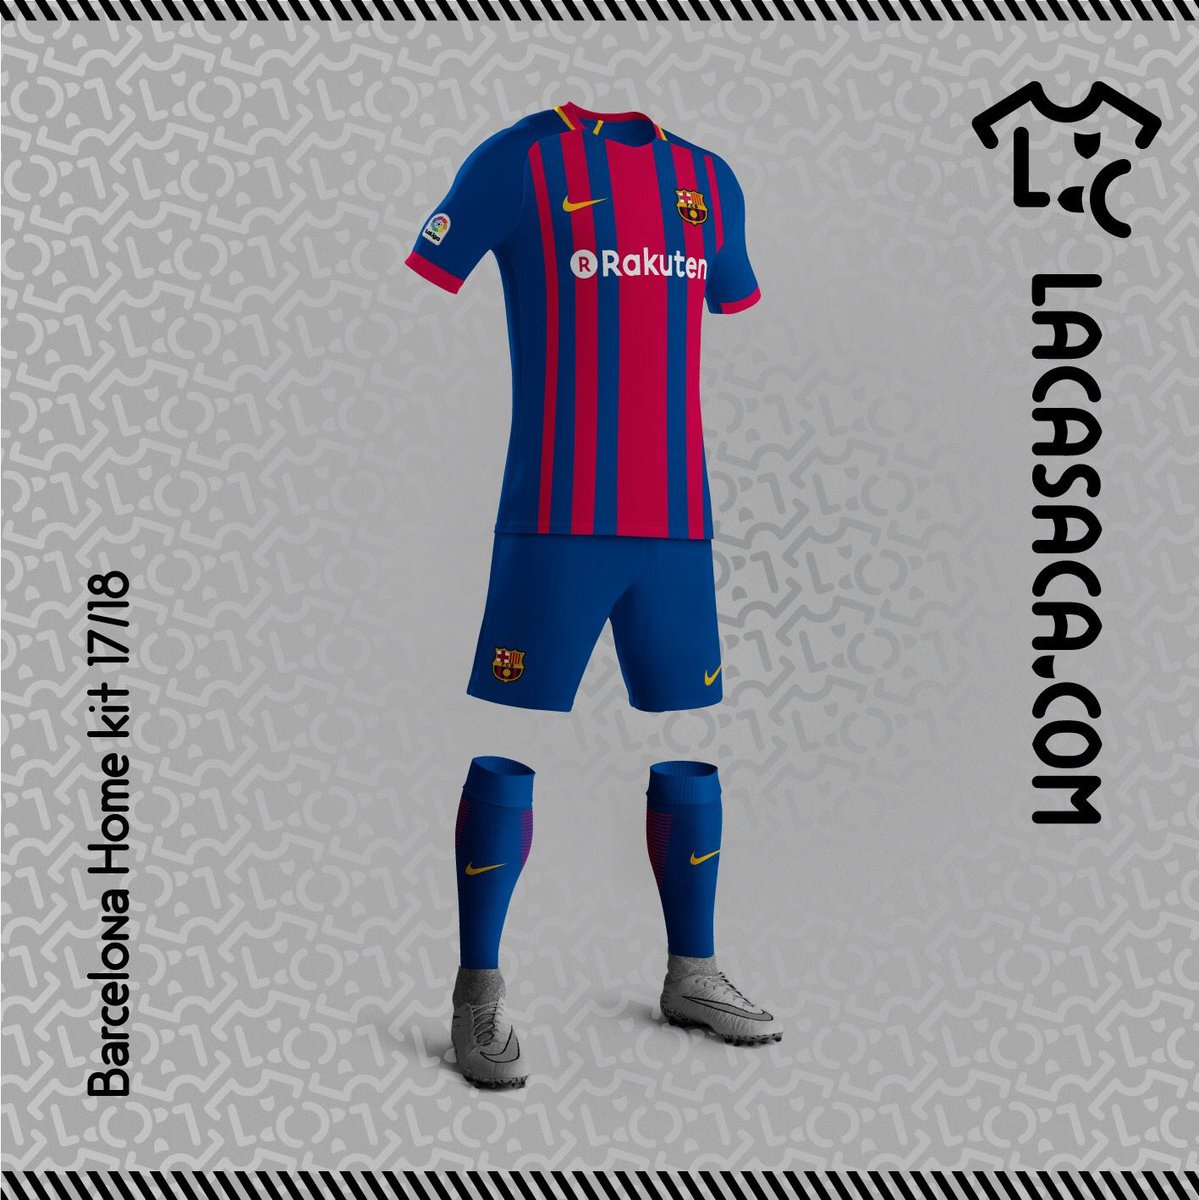 Barcelona Possible home, away and third kits of Barcelona for the 17_18 season